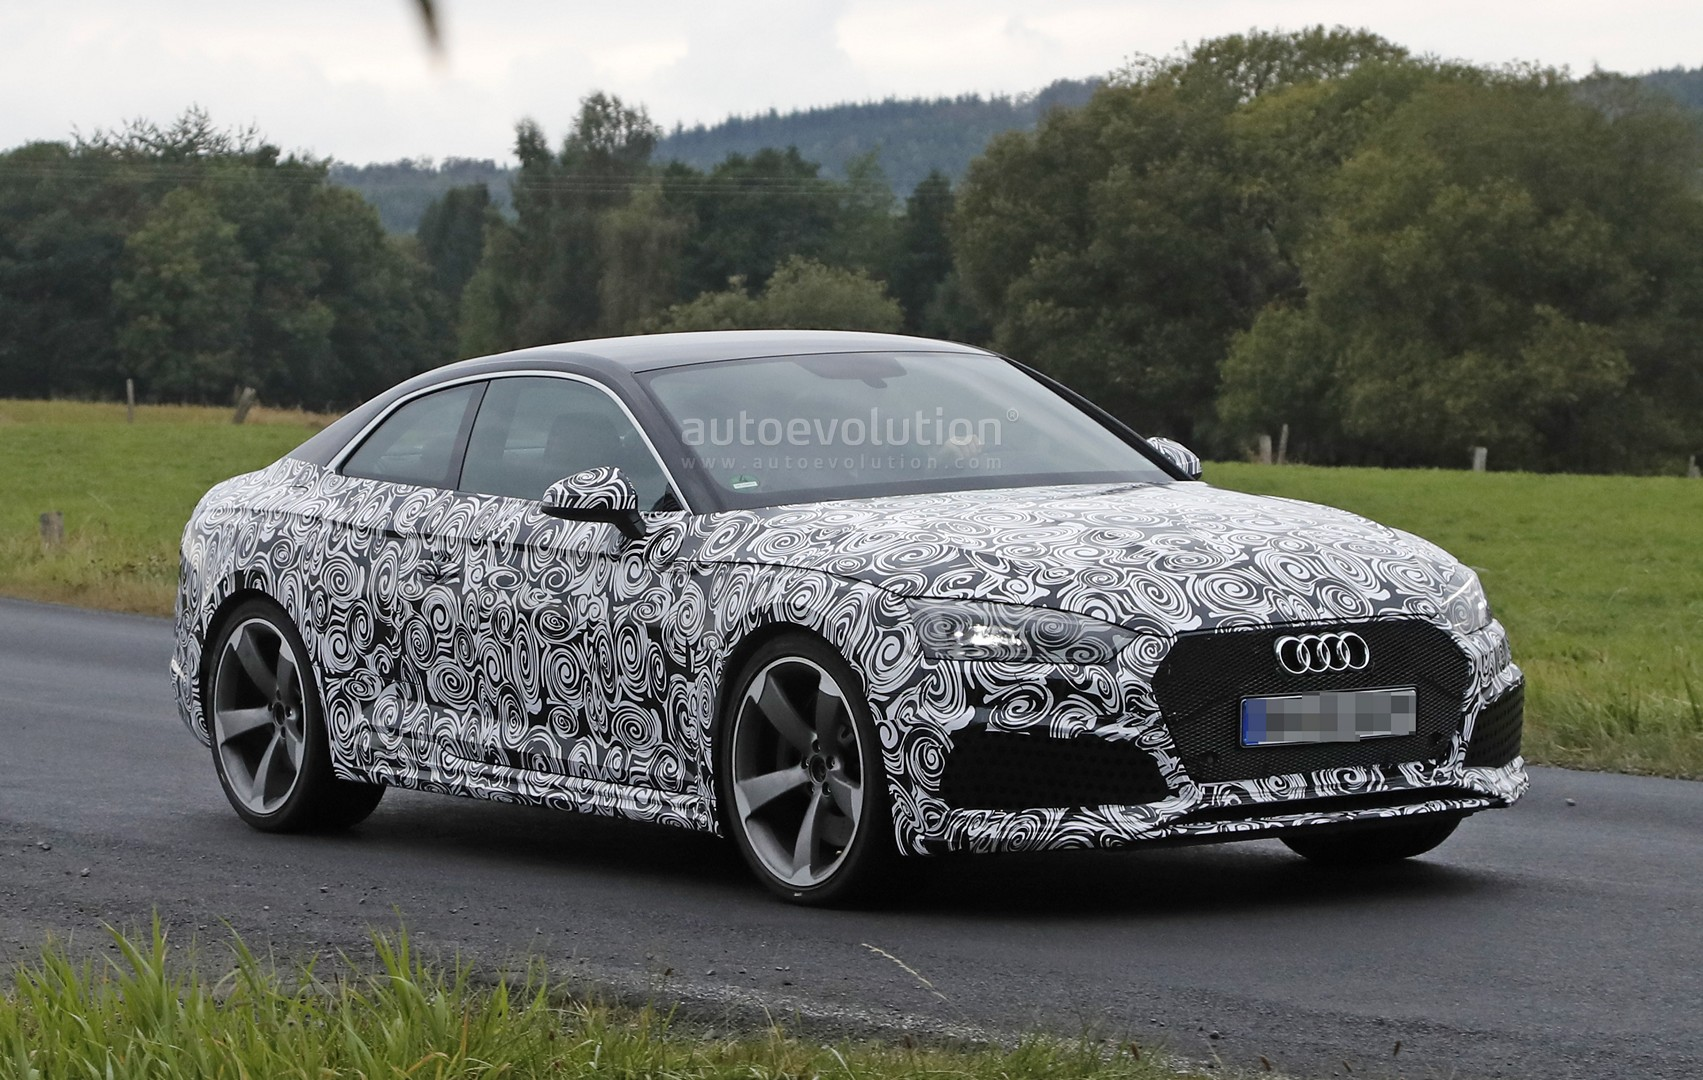 2018 audi rs5 coupe spied with production body for the. Black Bedroom Furniture Sets. Home Design Ideas